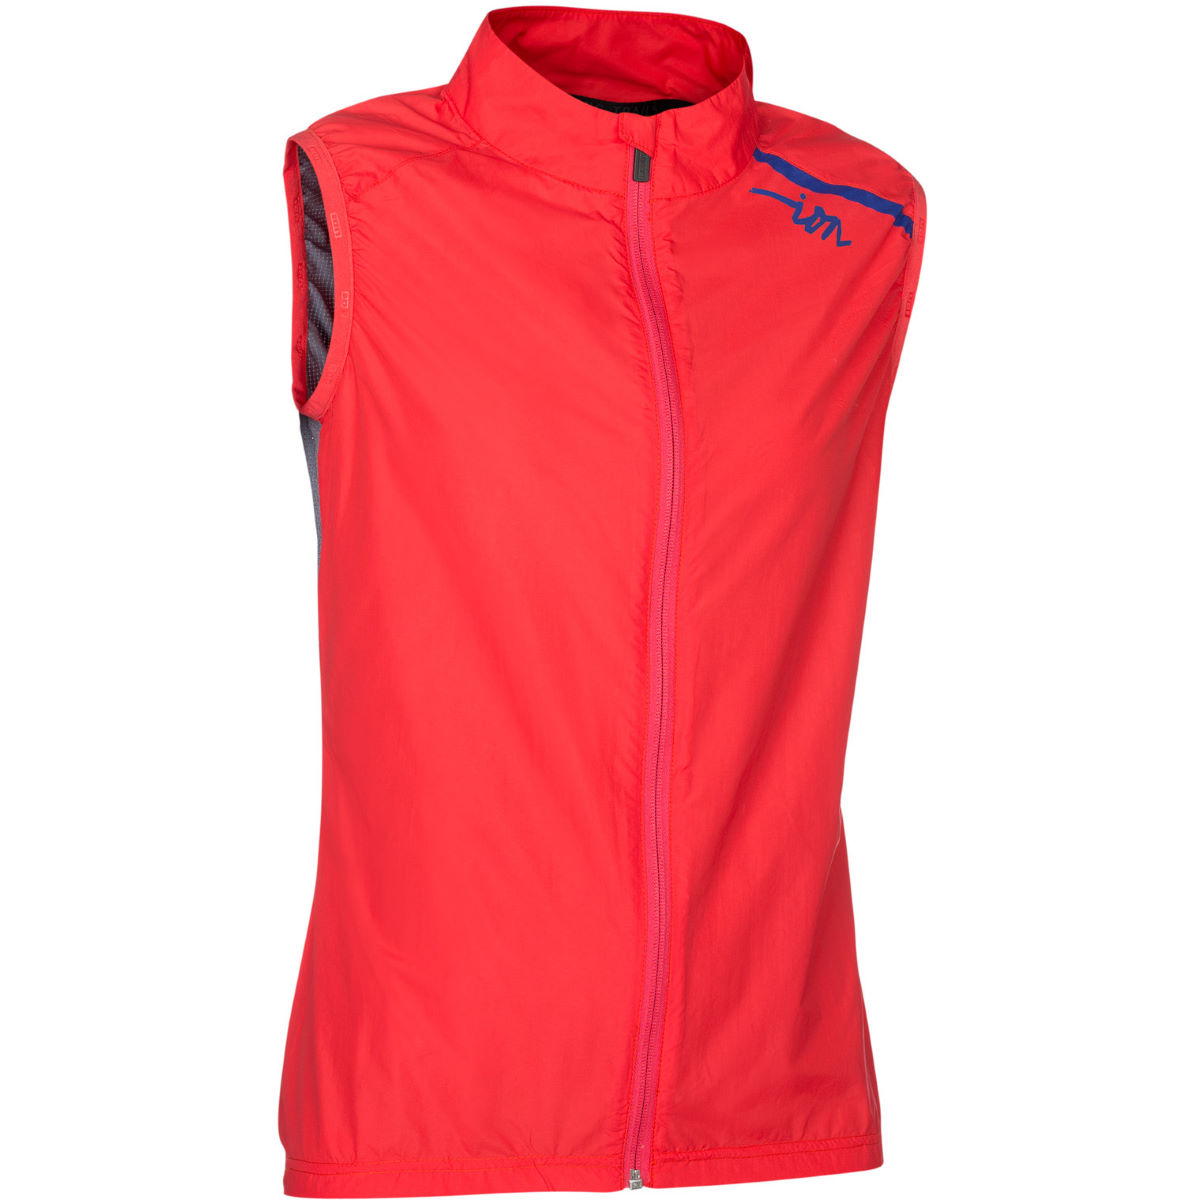 Ion reze vest cycling gilets hibiscus aw15 47603 5493 xs